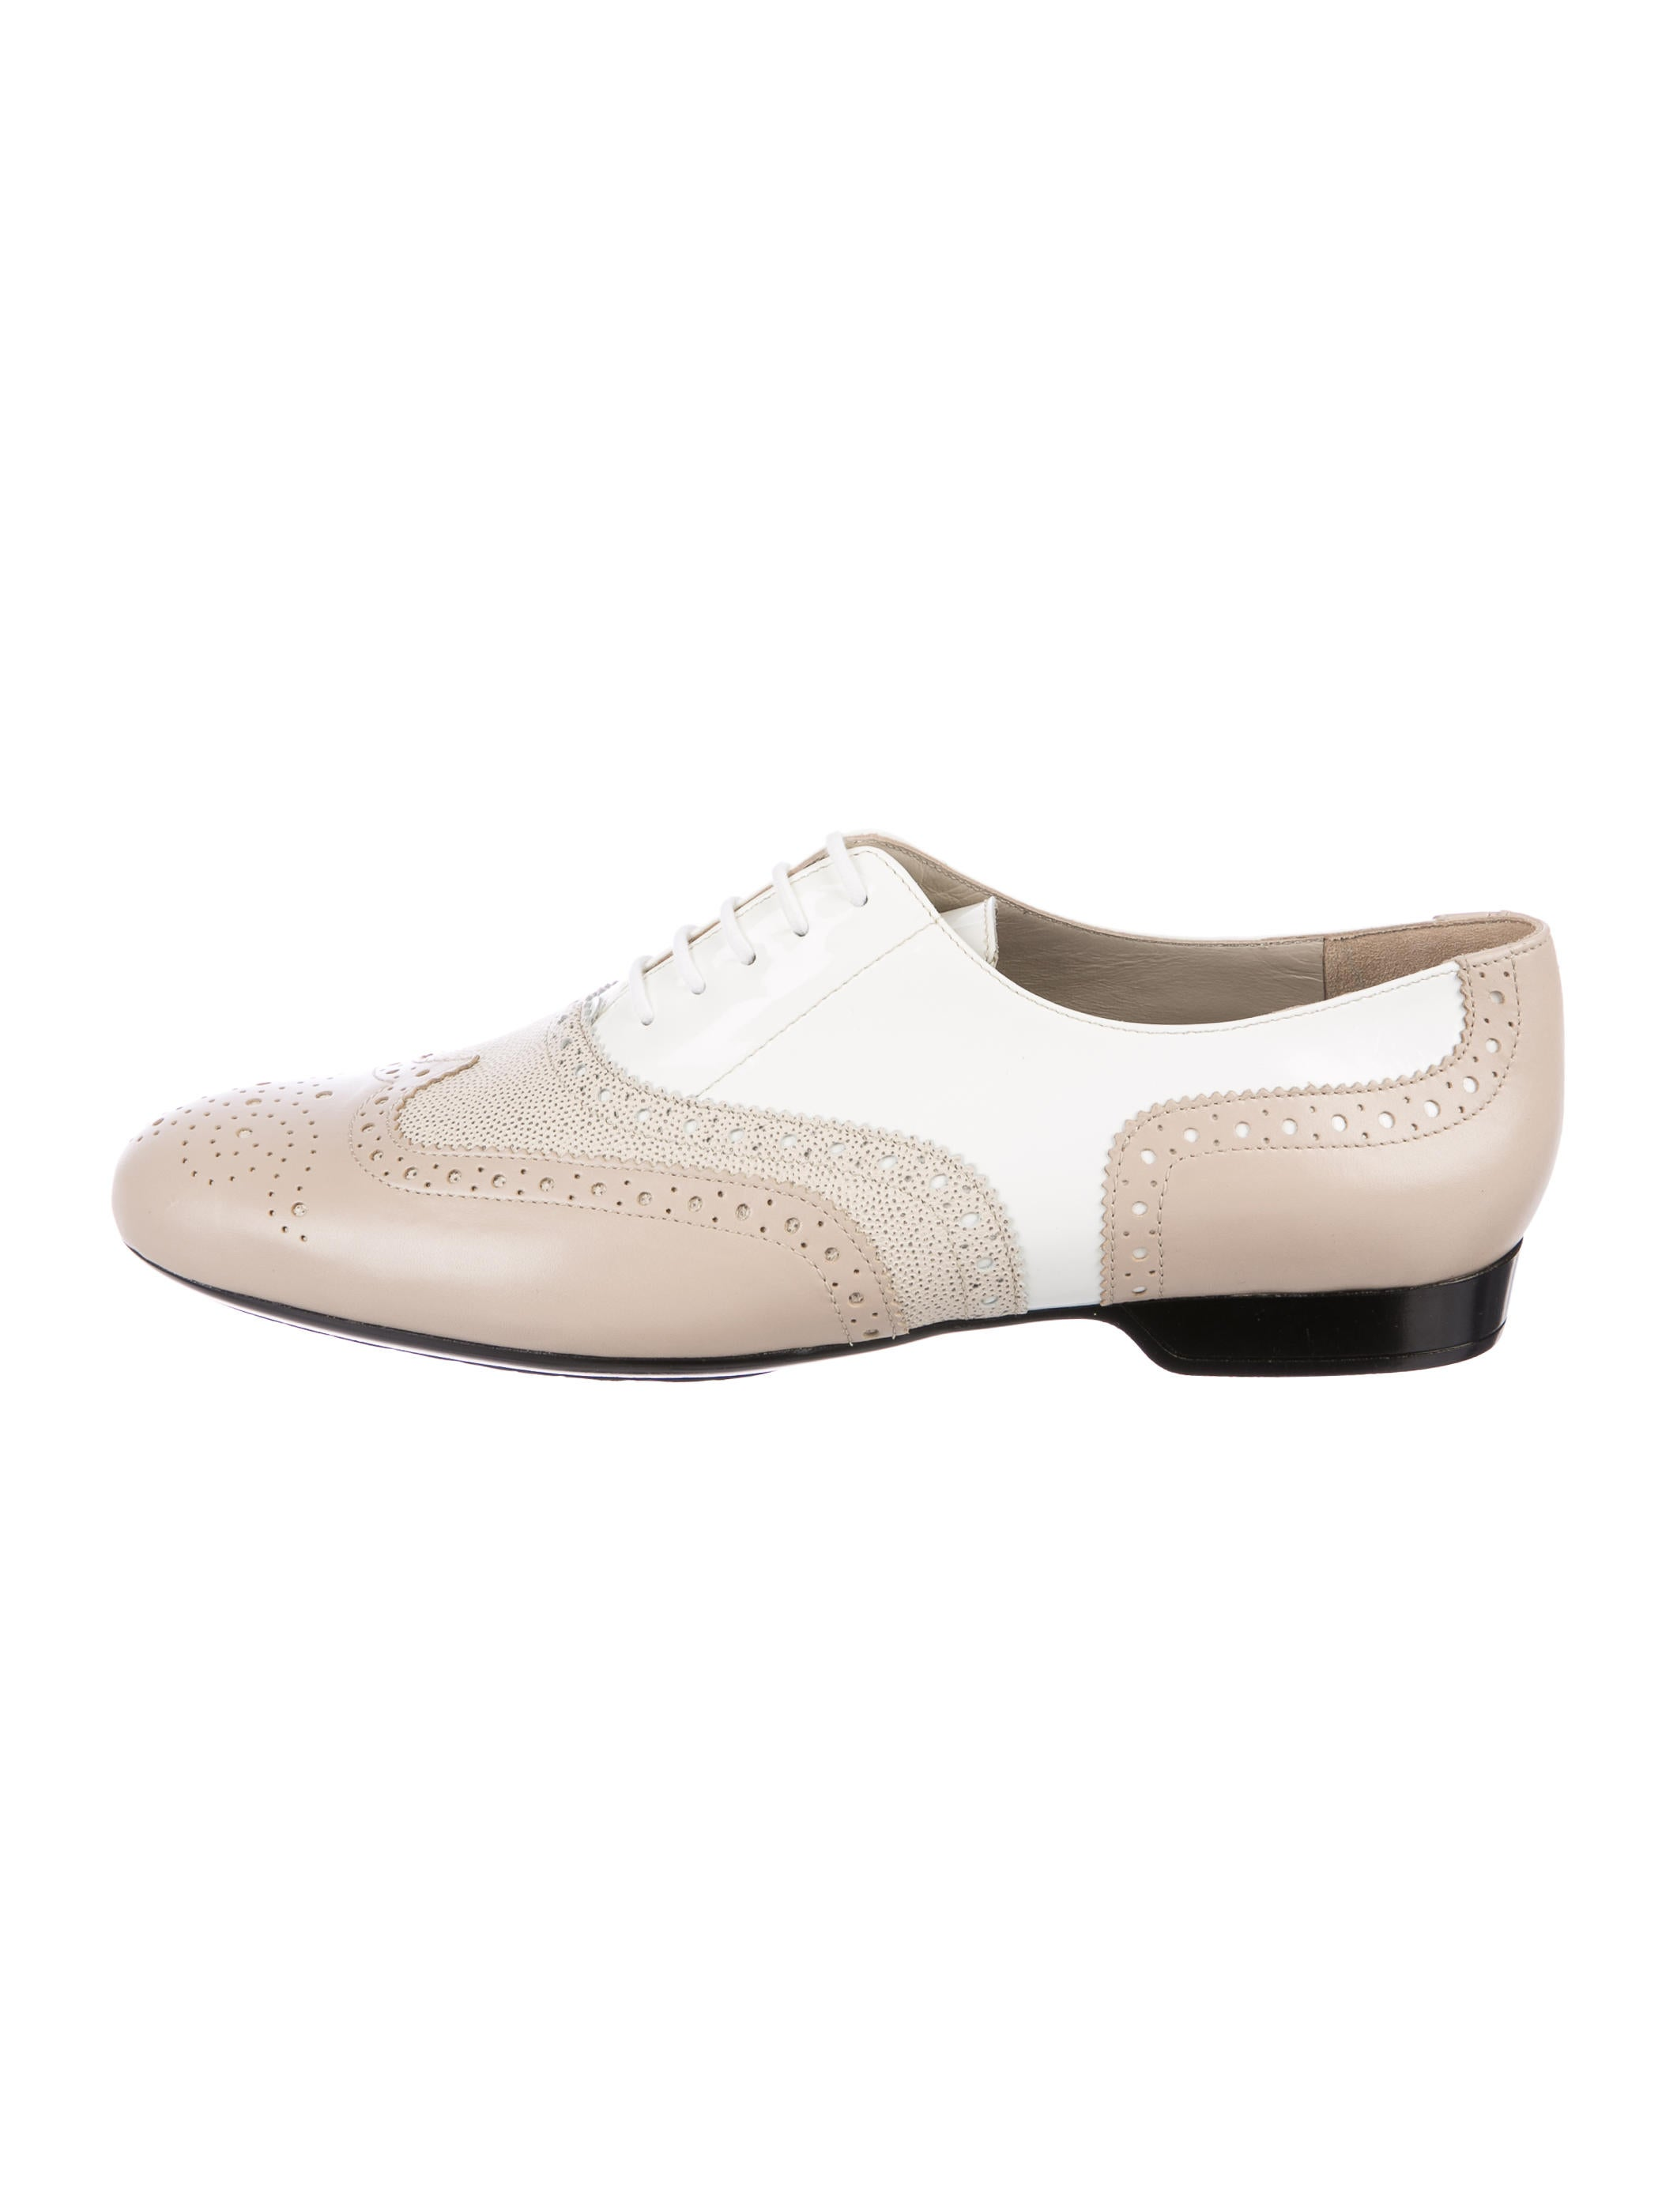 Robert Clergerie Wingtip Leather Oxfords w/ Tags cheap discounts prices cheap online free shipping original 2qSKxSgK